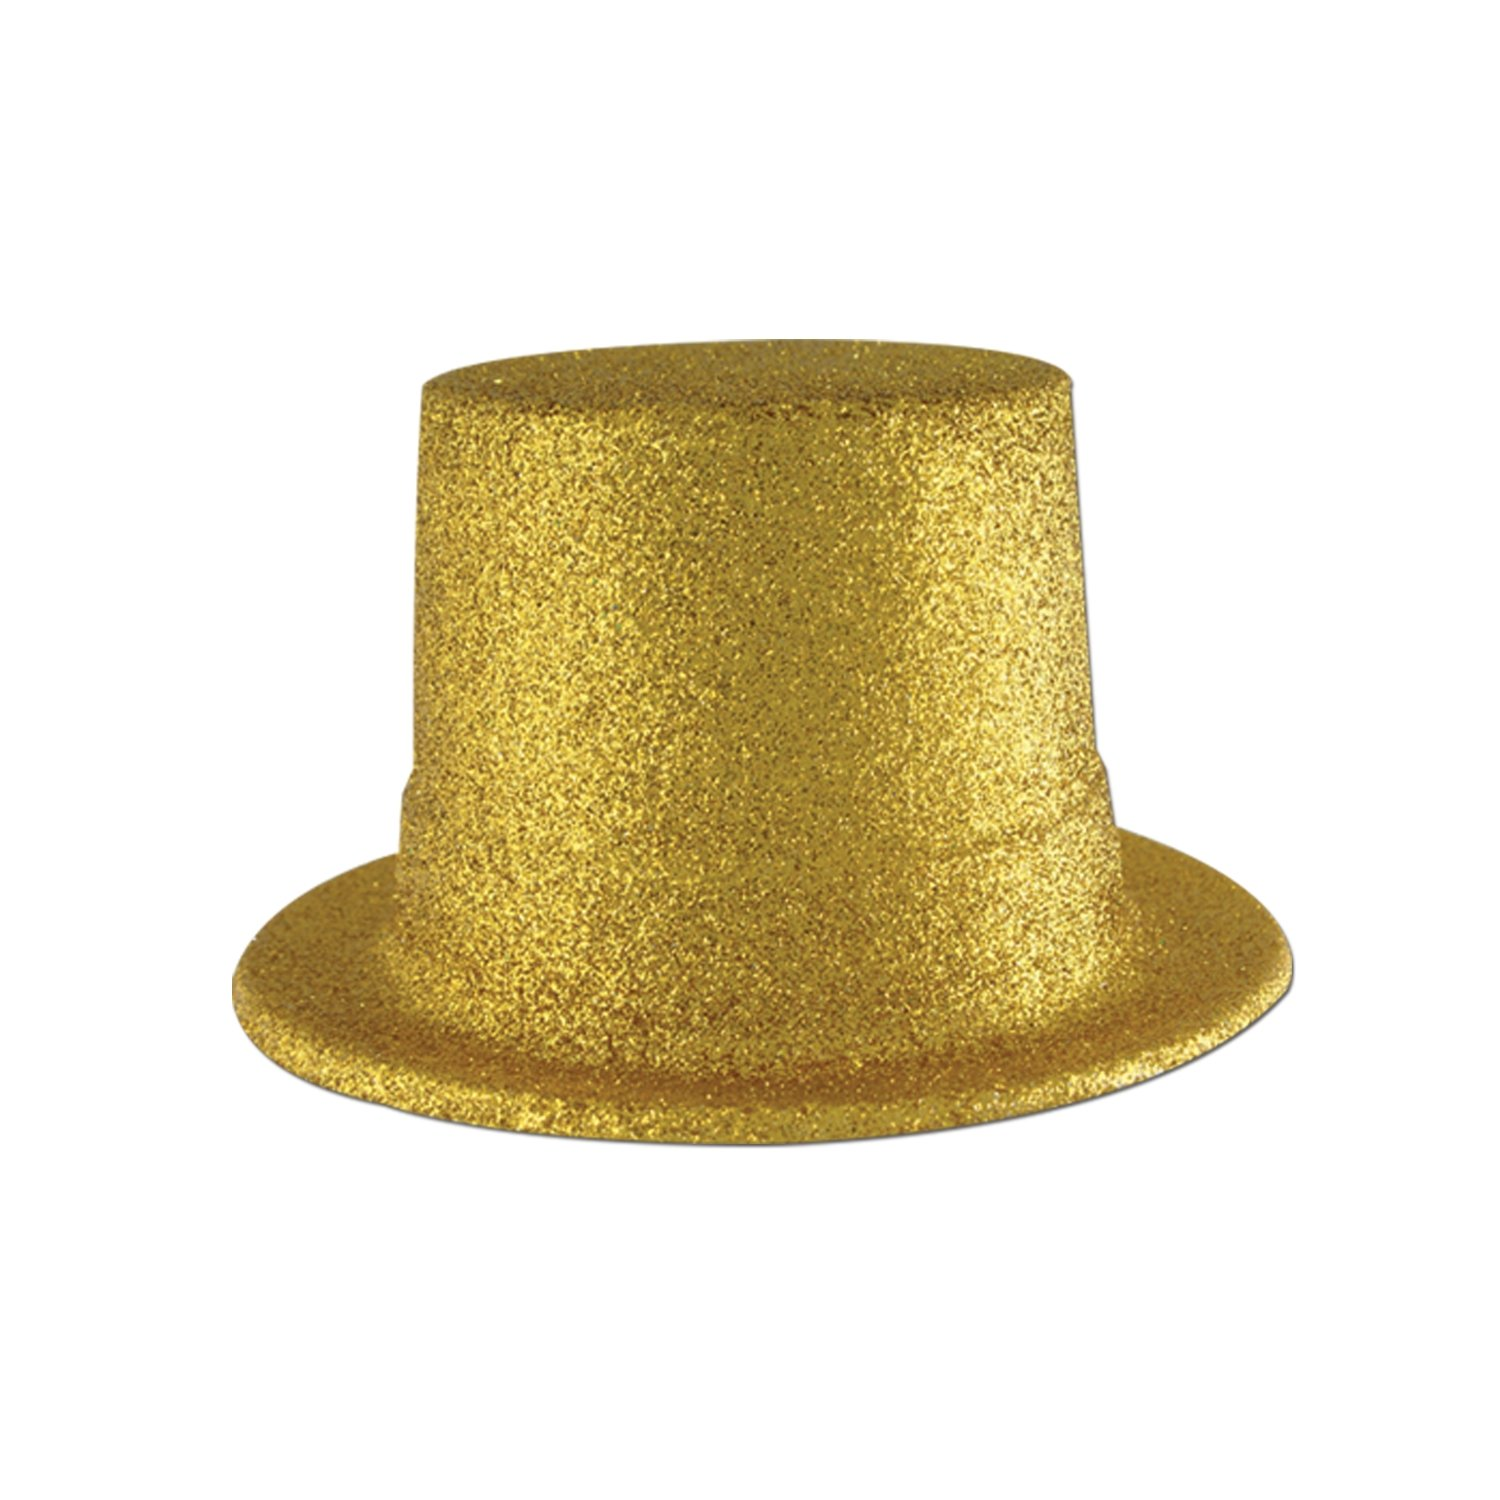 Beistle 60802-GD 24-Pack Glittered Top Hat, Gold by Beistle